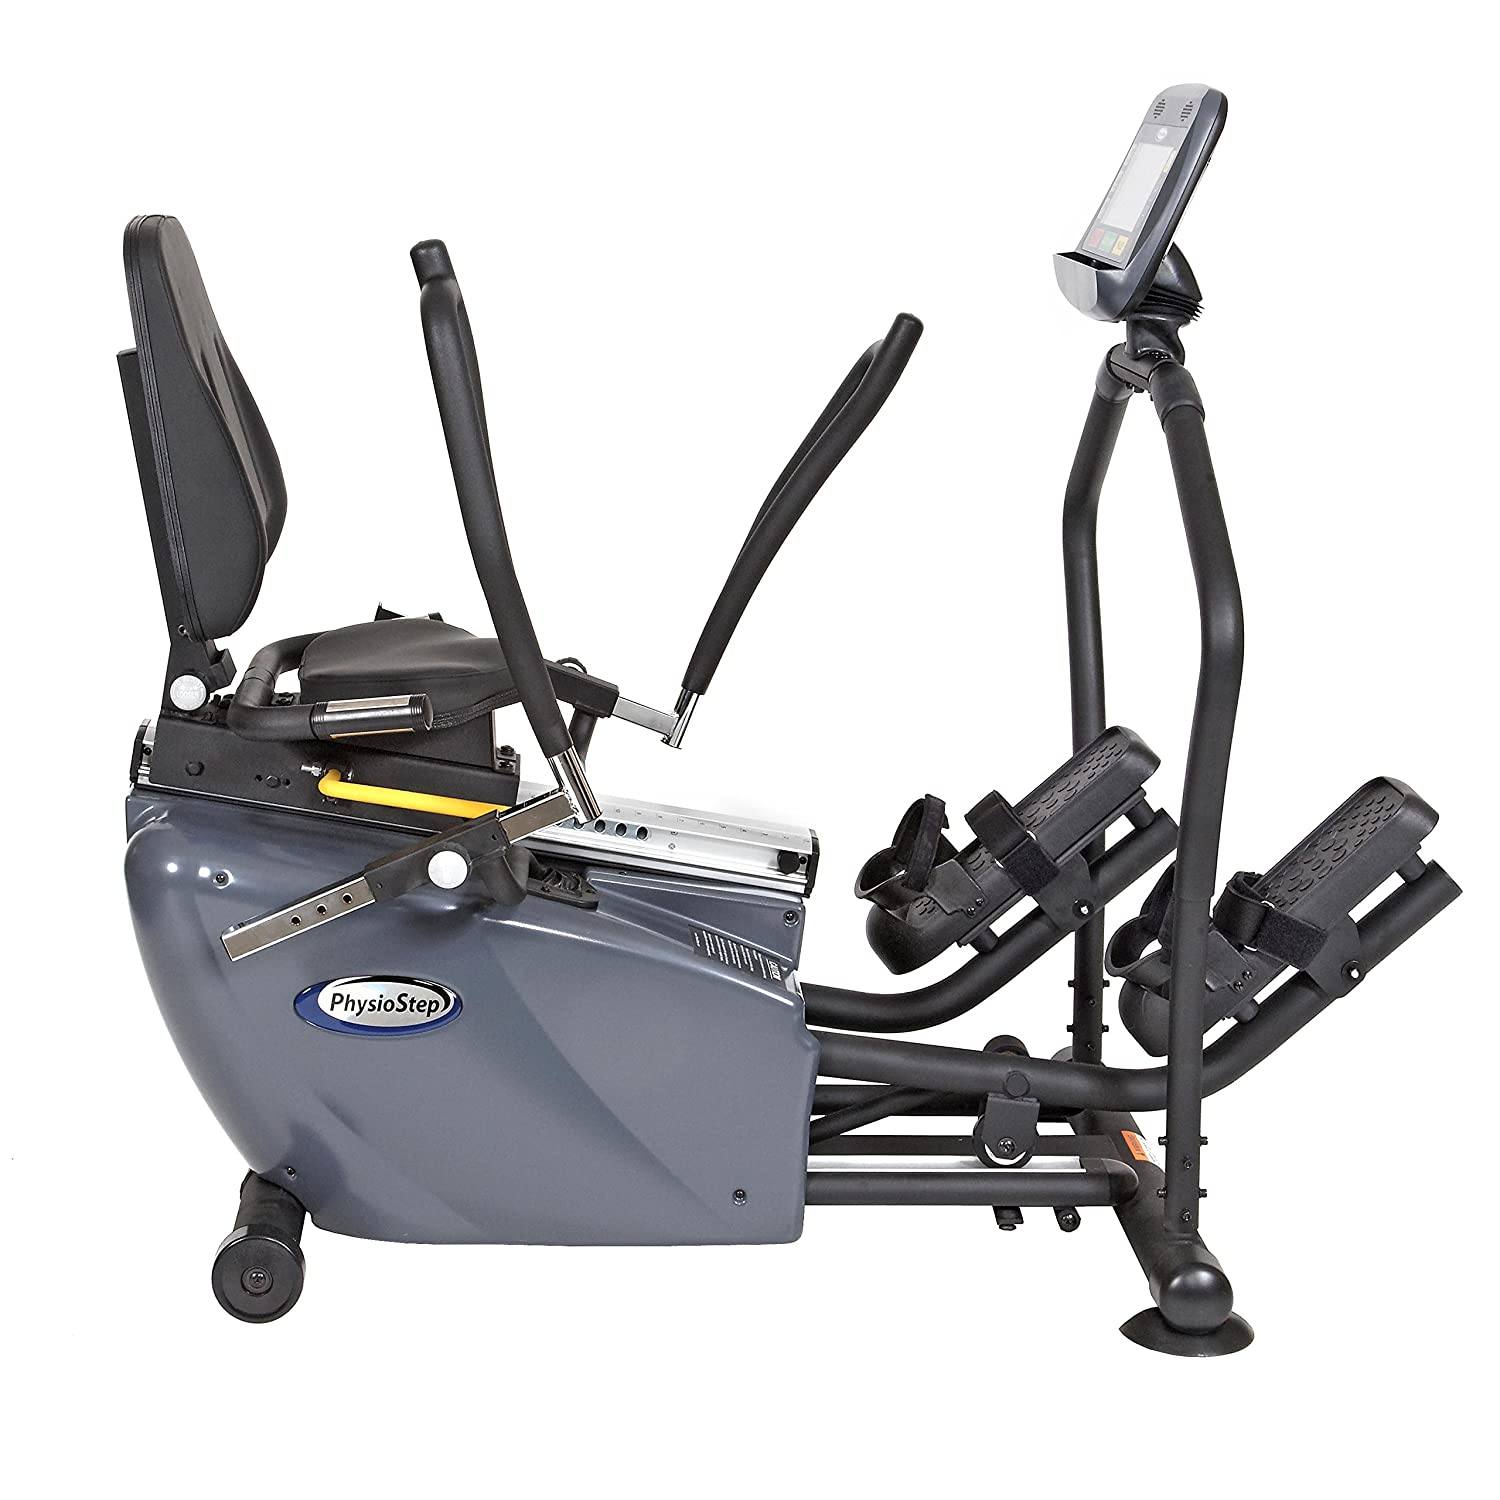 Fitness PhysioStep RXT-1000 Recumbent Elliptical Trainer